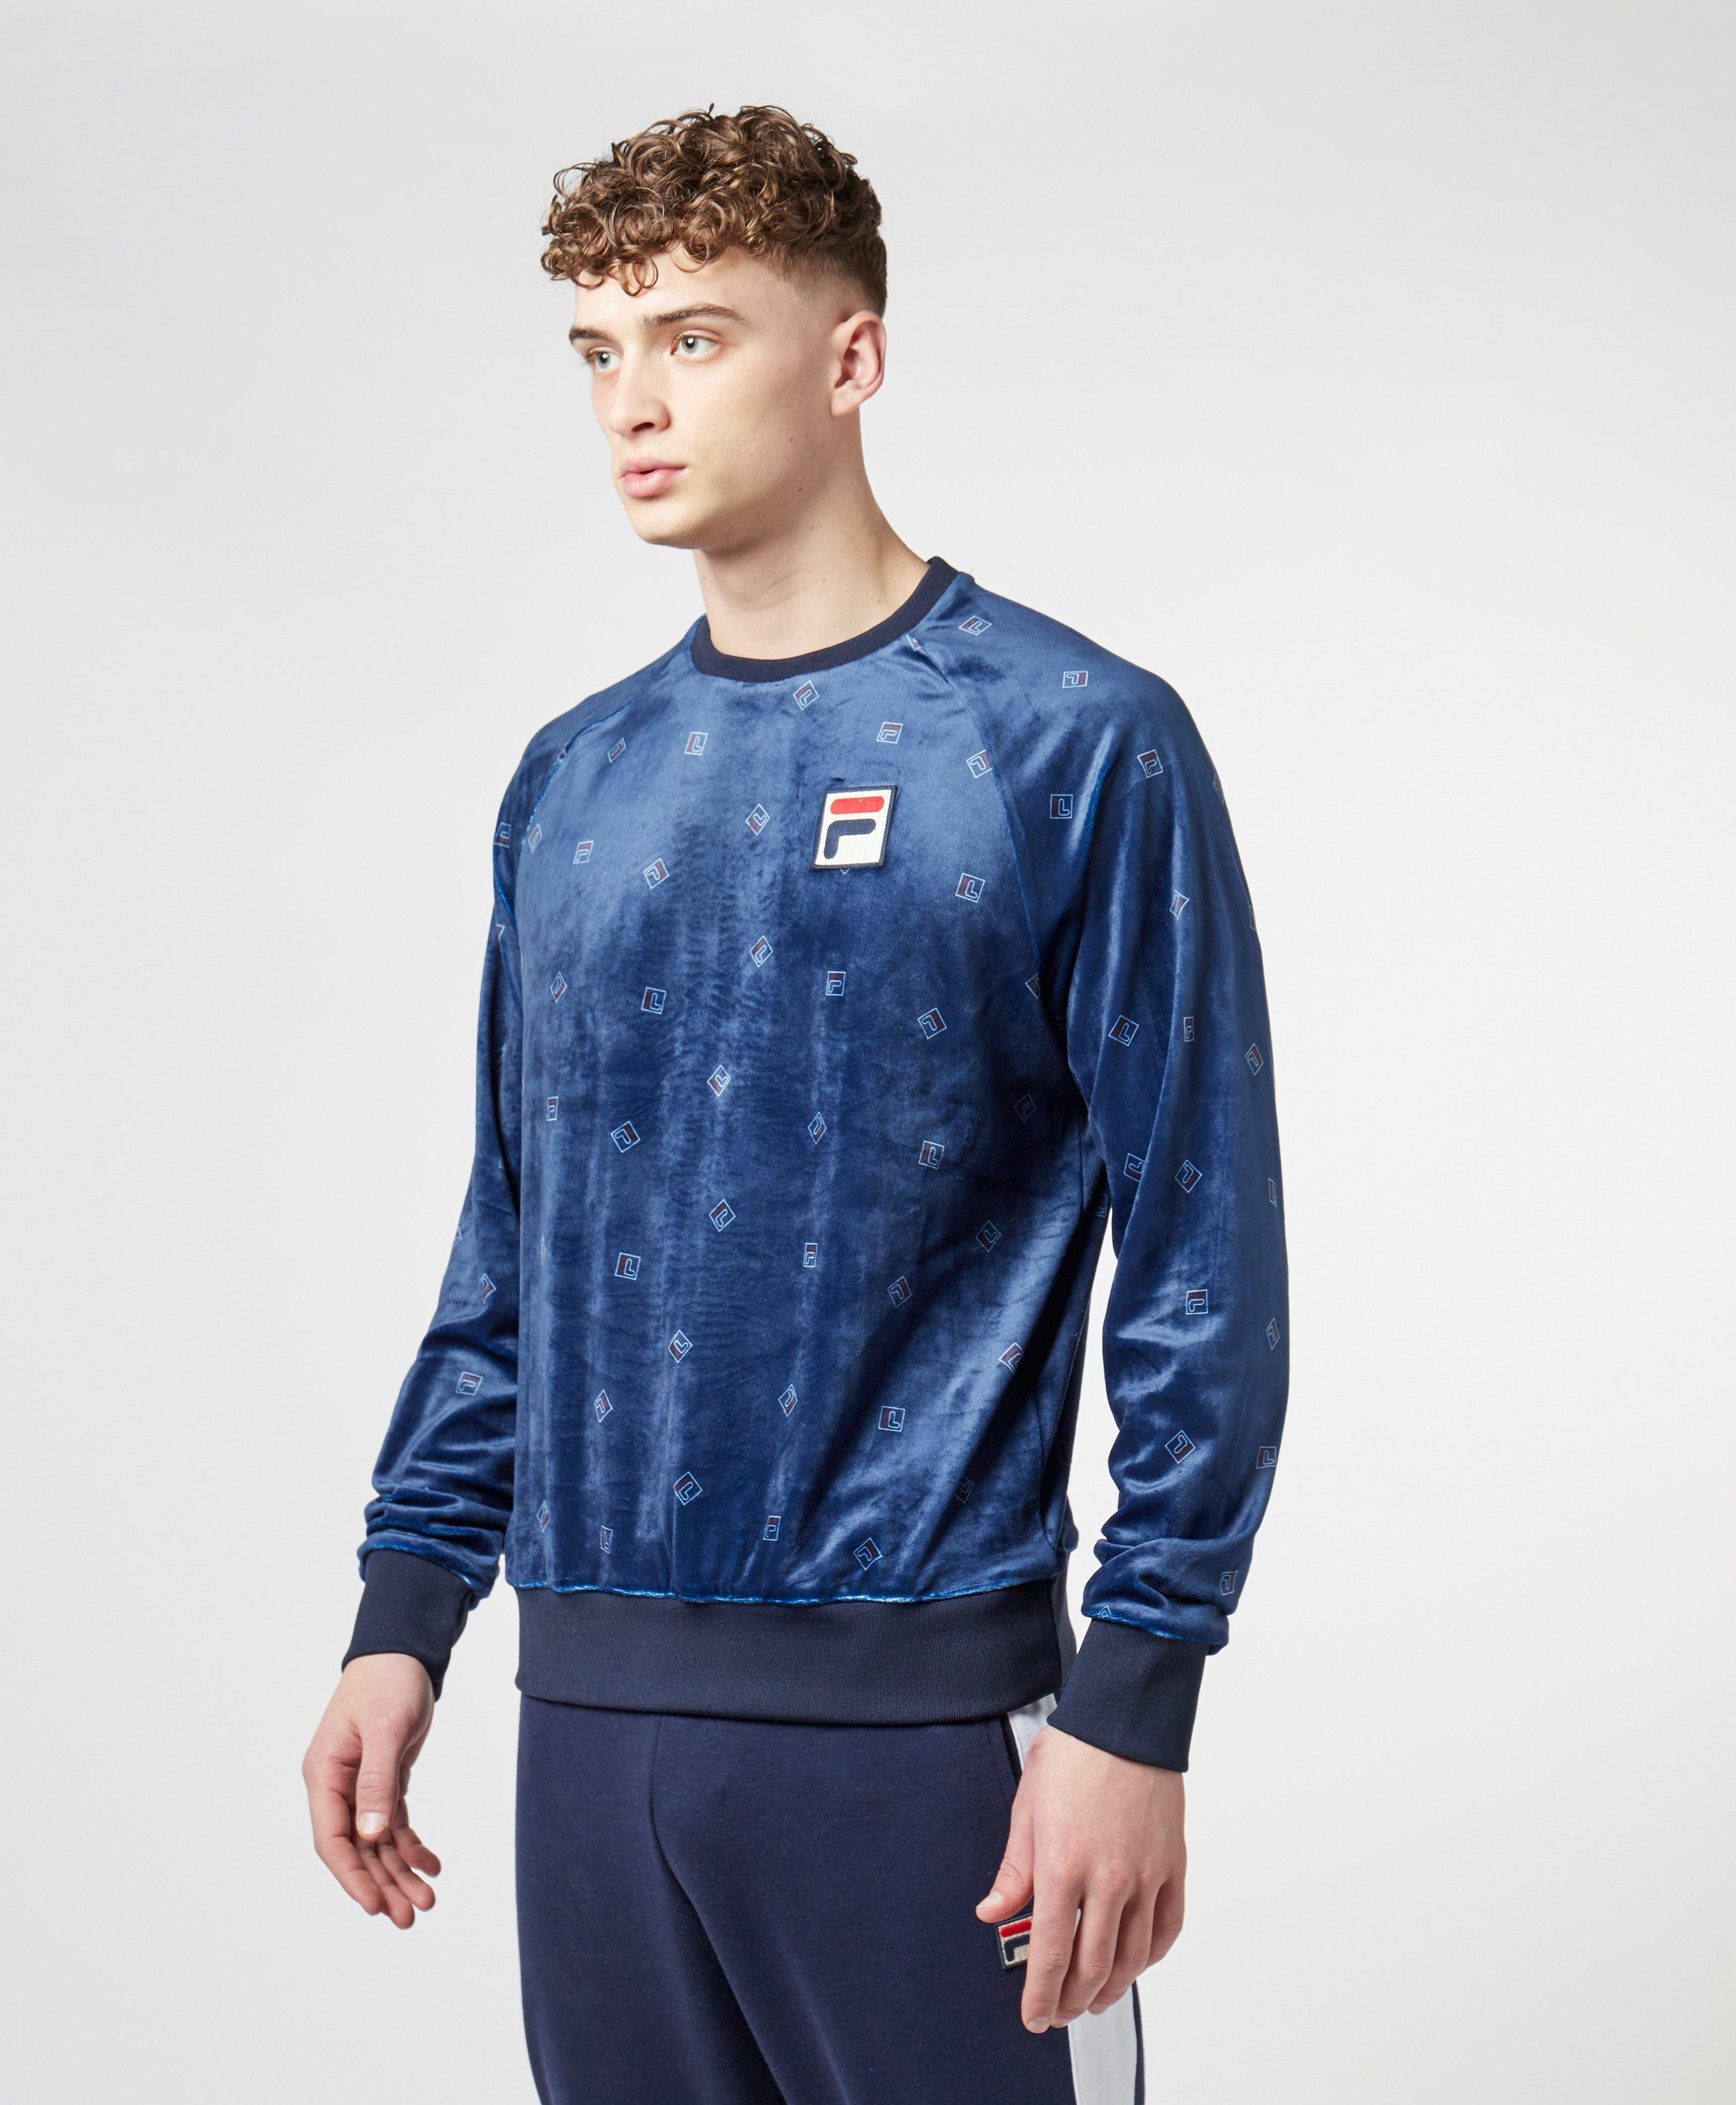 1f3a6bc64e60 Lyst - Fila All Over Print Sweatshirt in Blue for Men